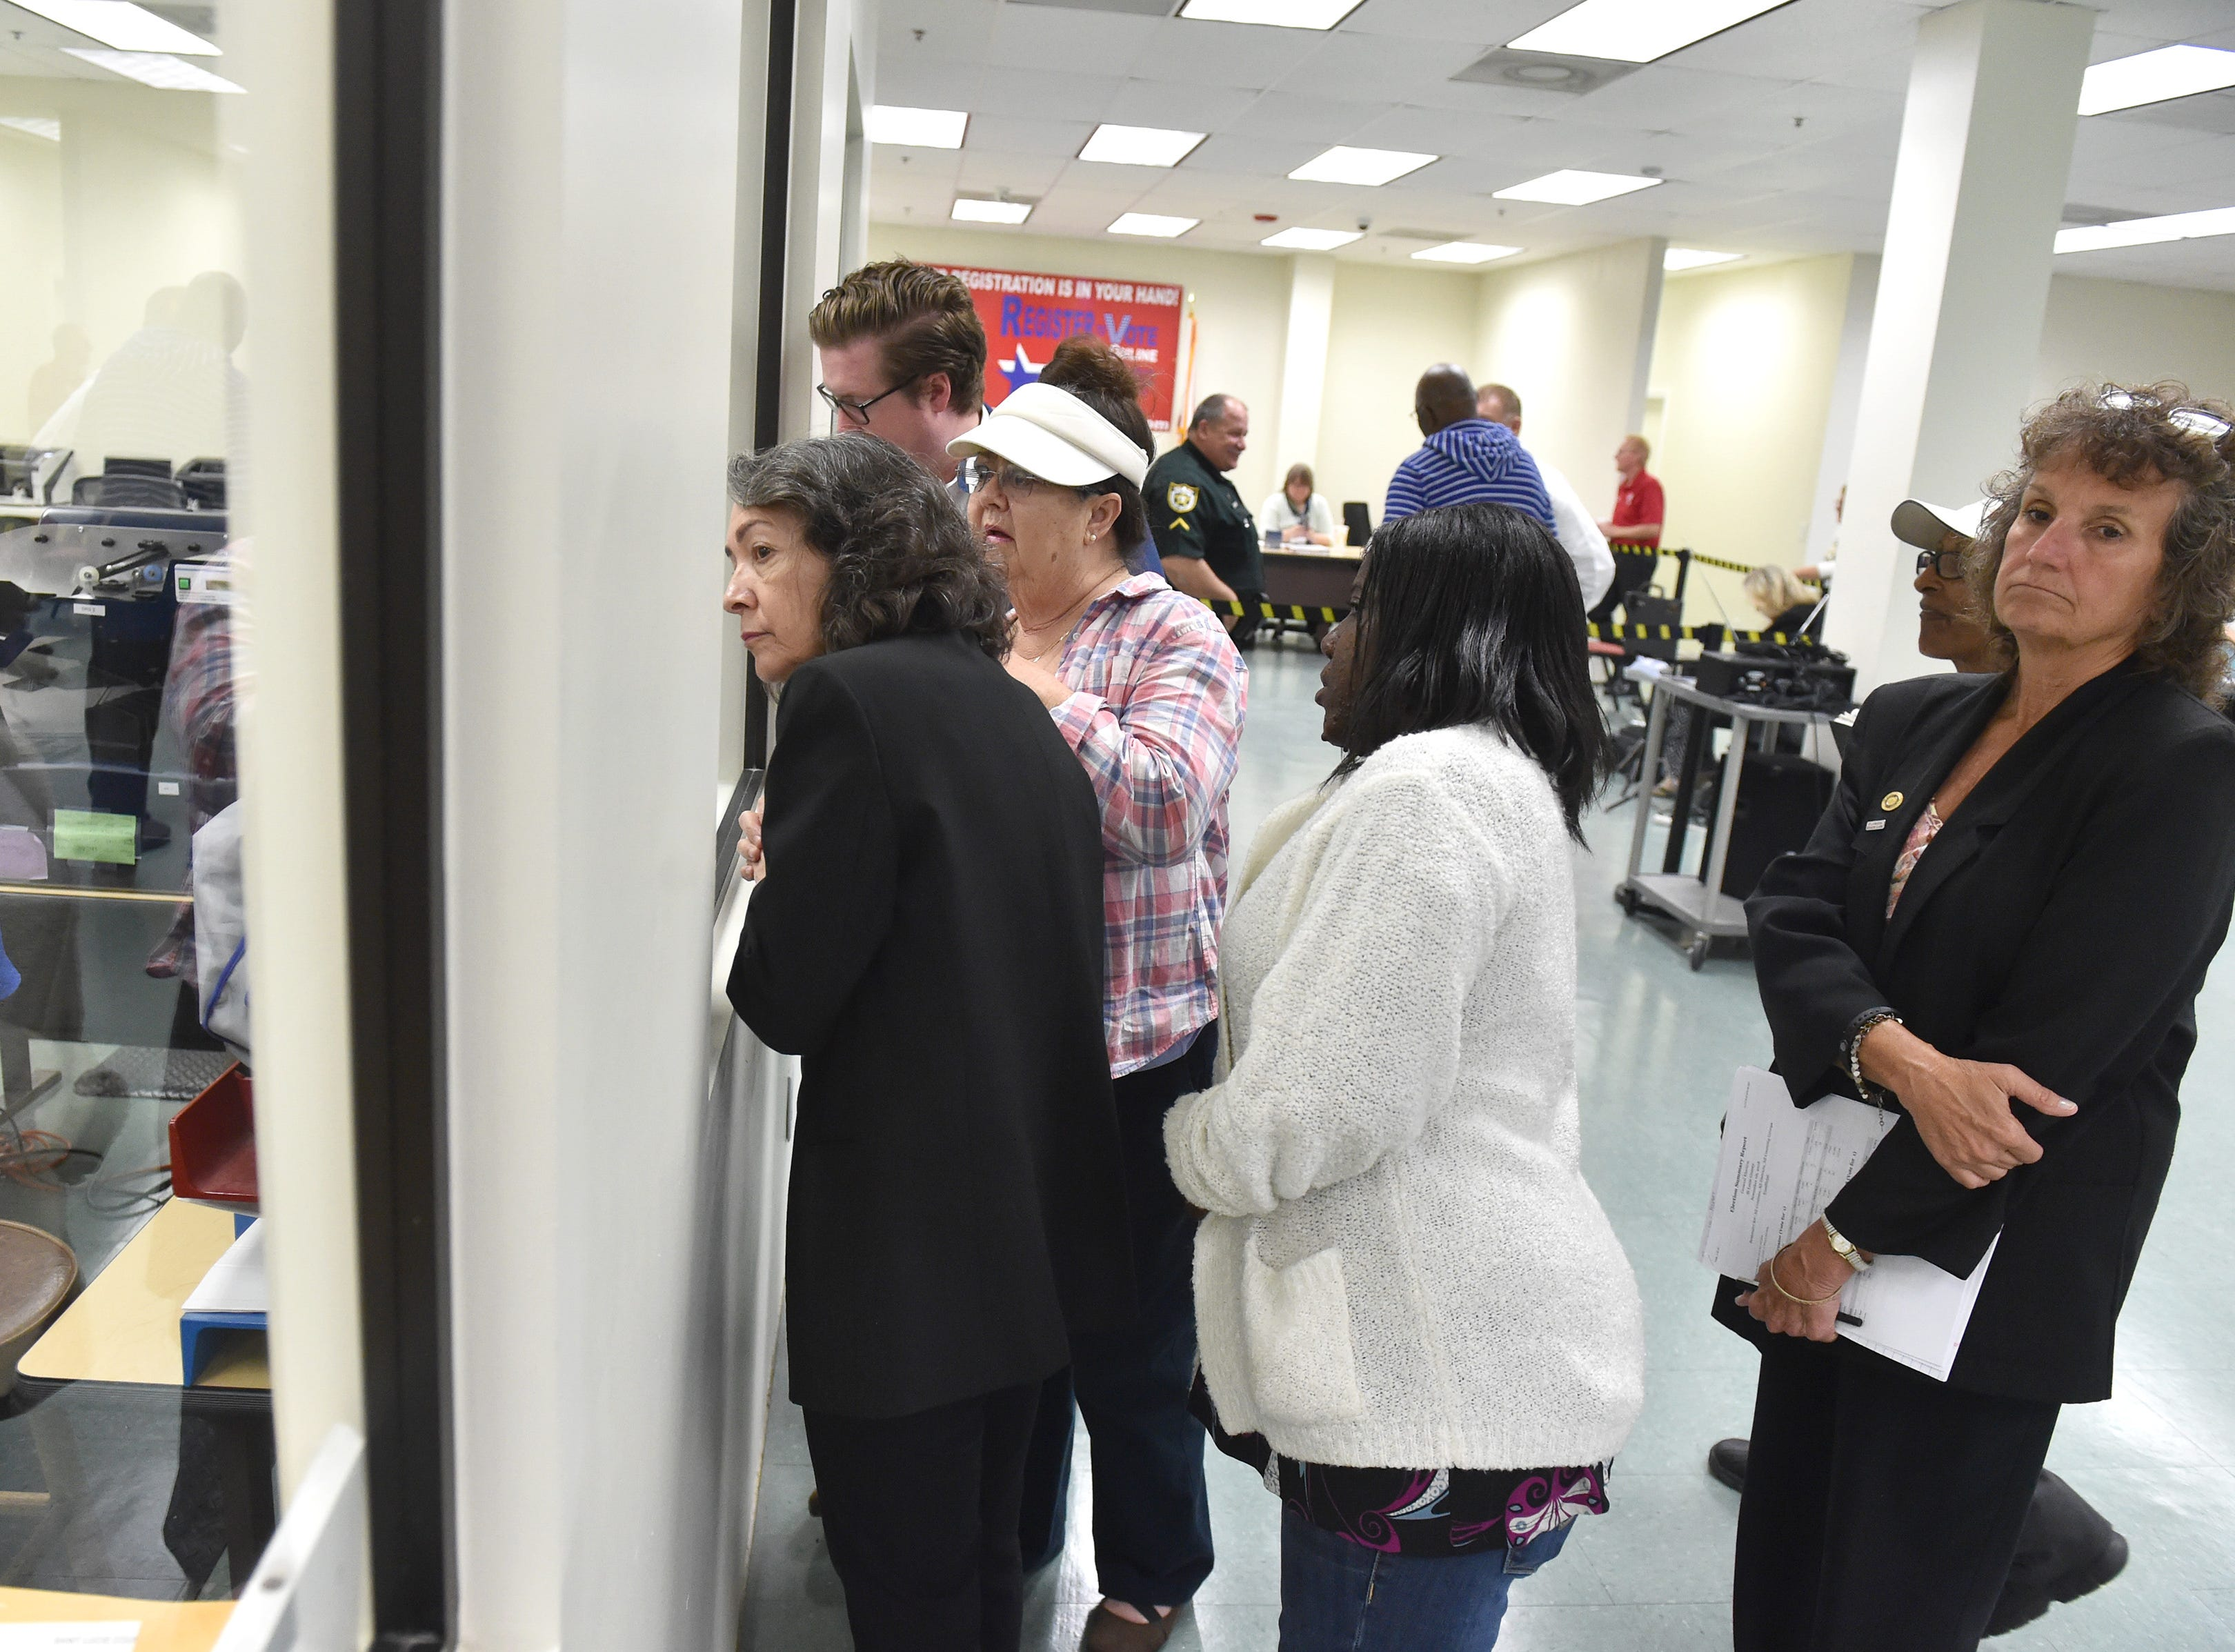 The St. Lucie County Supervisor of Elections staff begin their machine recount of 38,853 absentee ballots on Monday, Nov. 12, 2018, in Fort Pierce. The Florida Secretary of State ordered a machine recount of the Governor, U.S. Senate, and the Florida Commissioner of Agriculture contests.